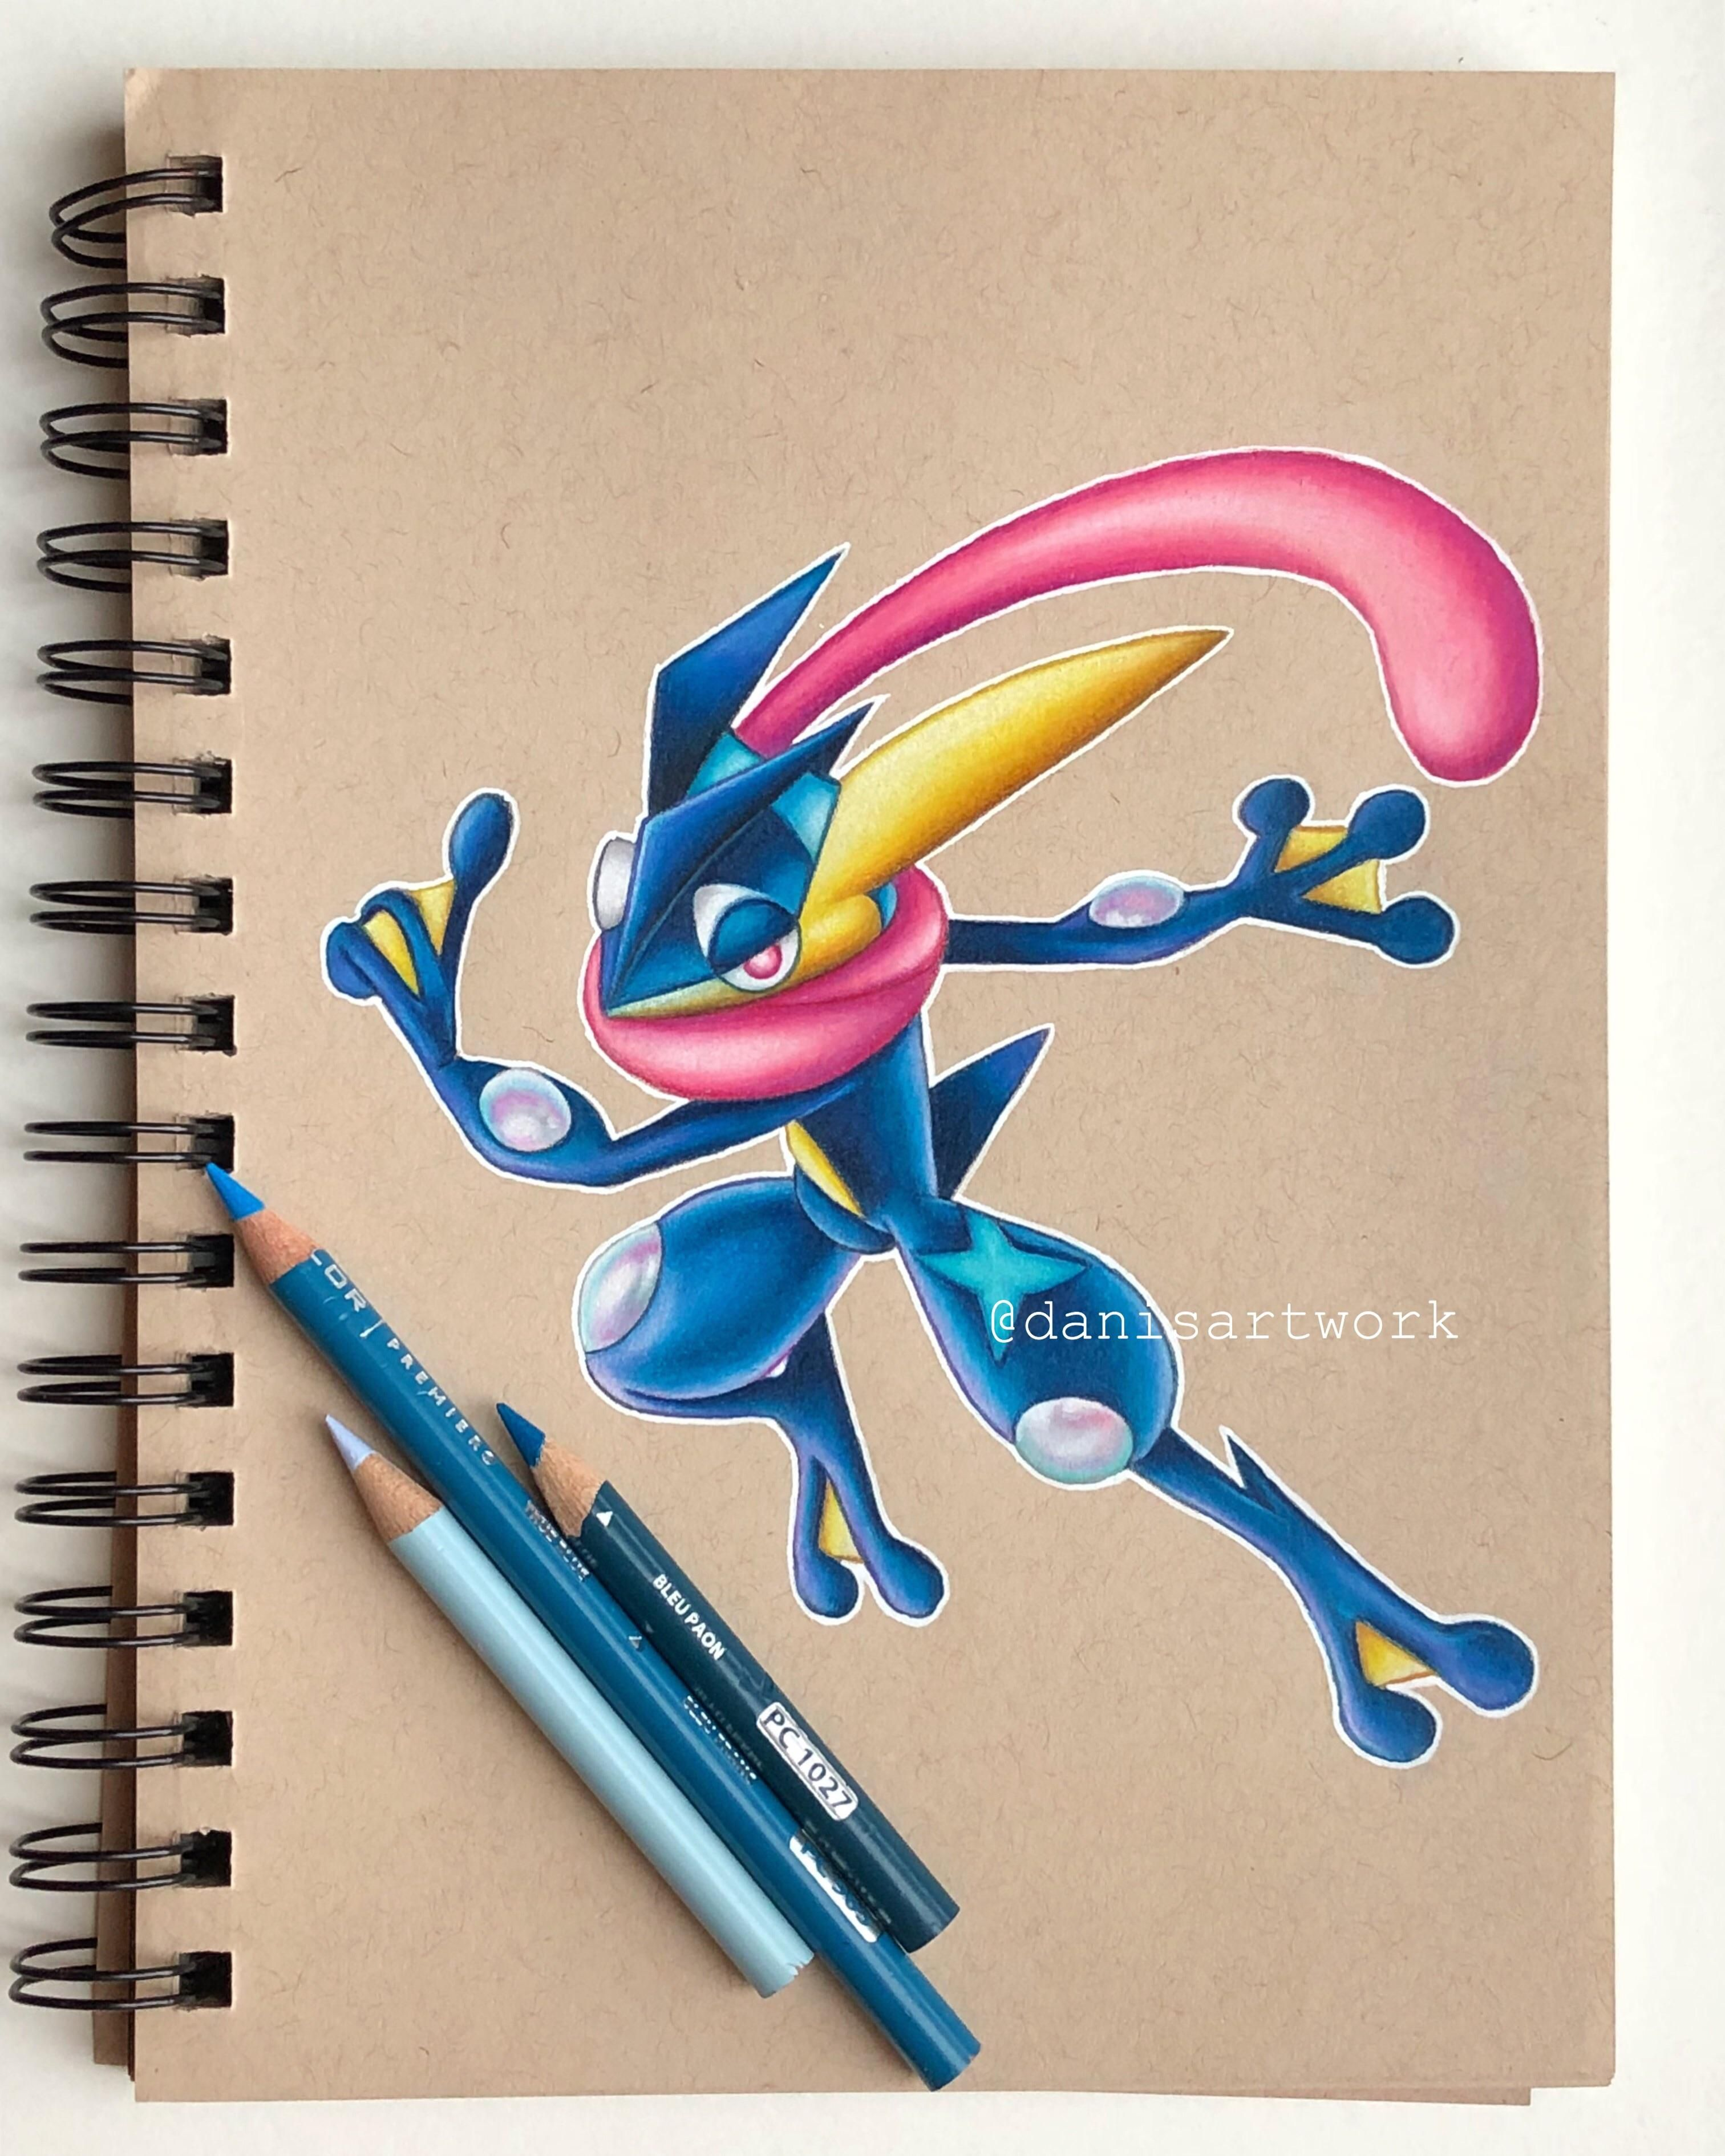 Finished my pencil crayon drawing of greninja from pokémon super